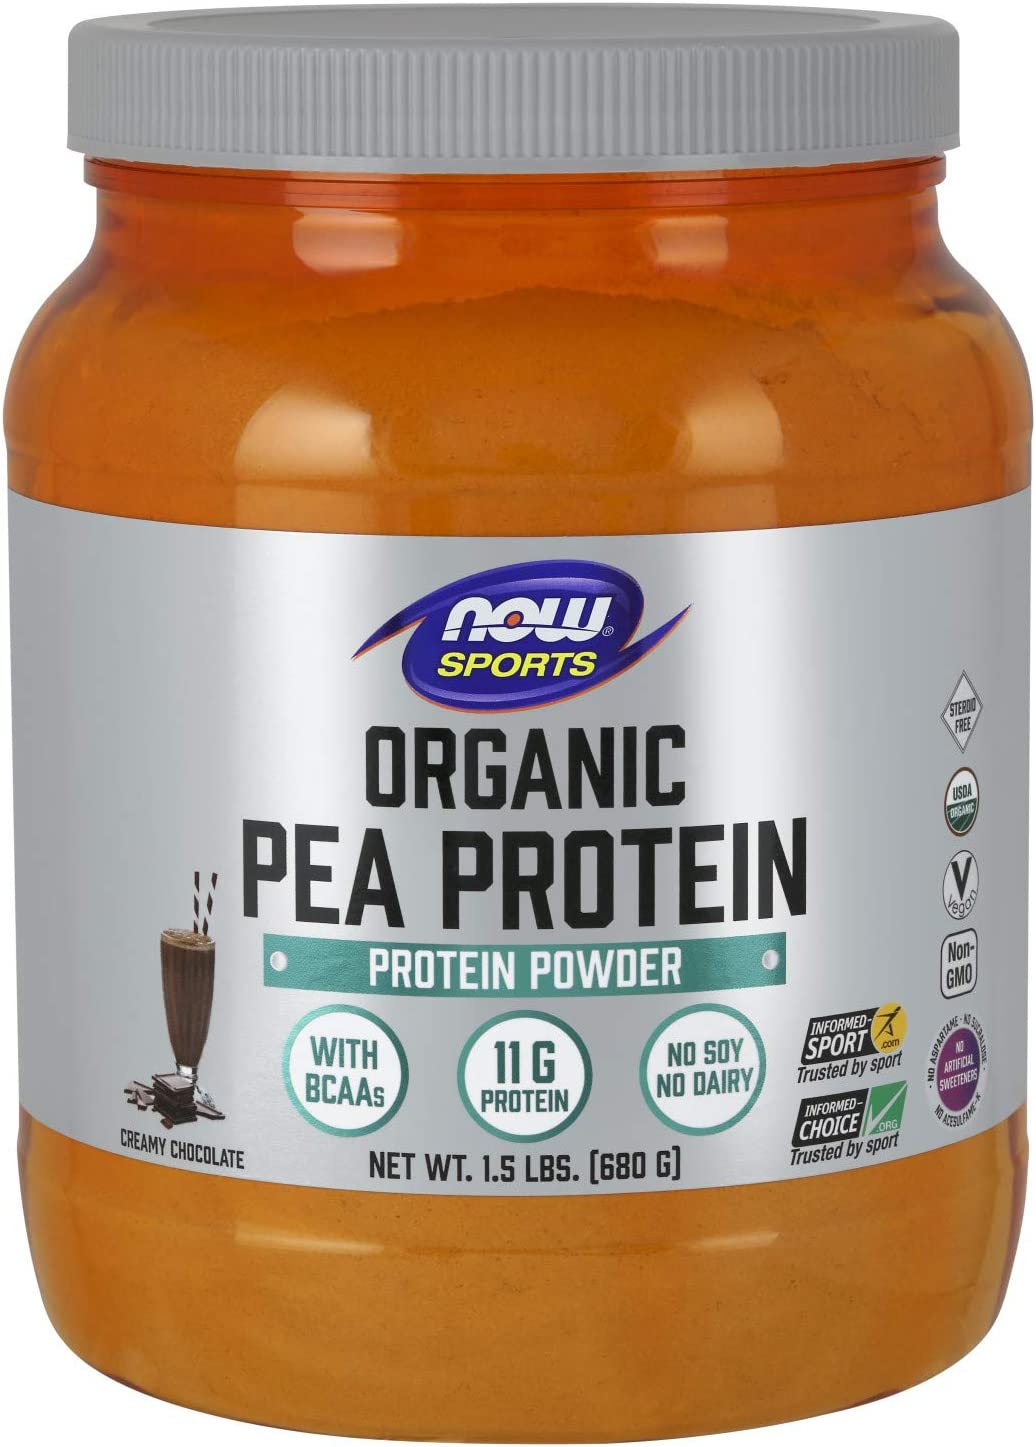 NOW Sports Nutrition, Certified Organic Pea Protein, 11G With BCAAs, Creamy Chocolate Powder, 1.5-Pound: Health & Personal Care